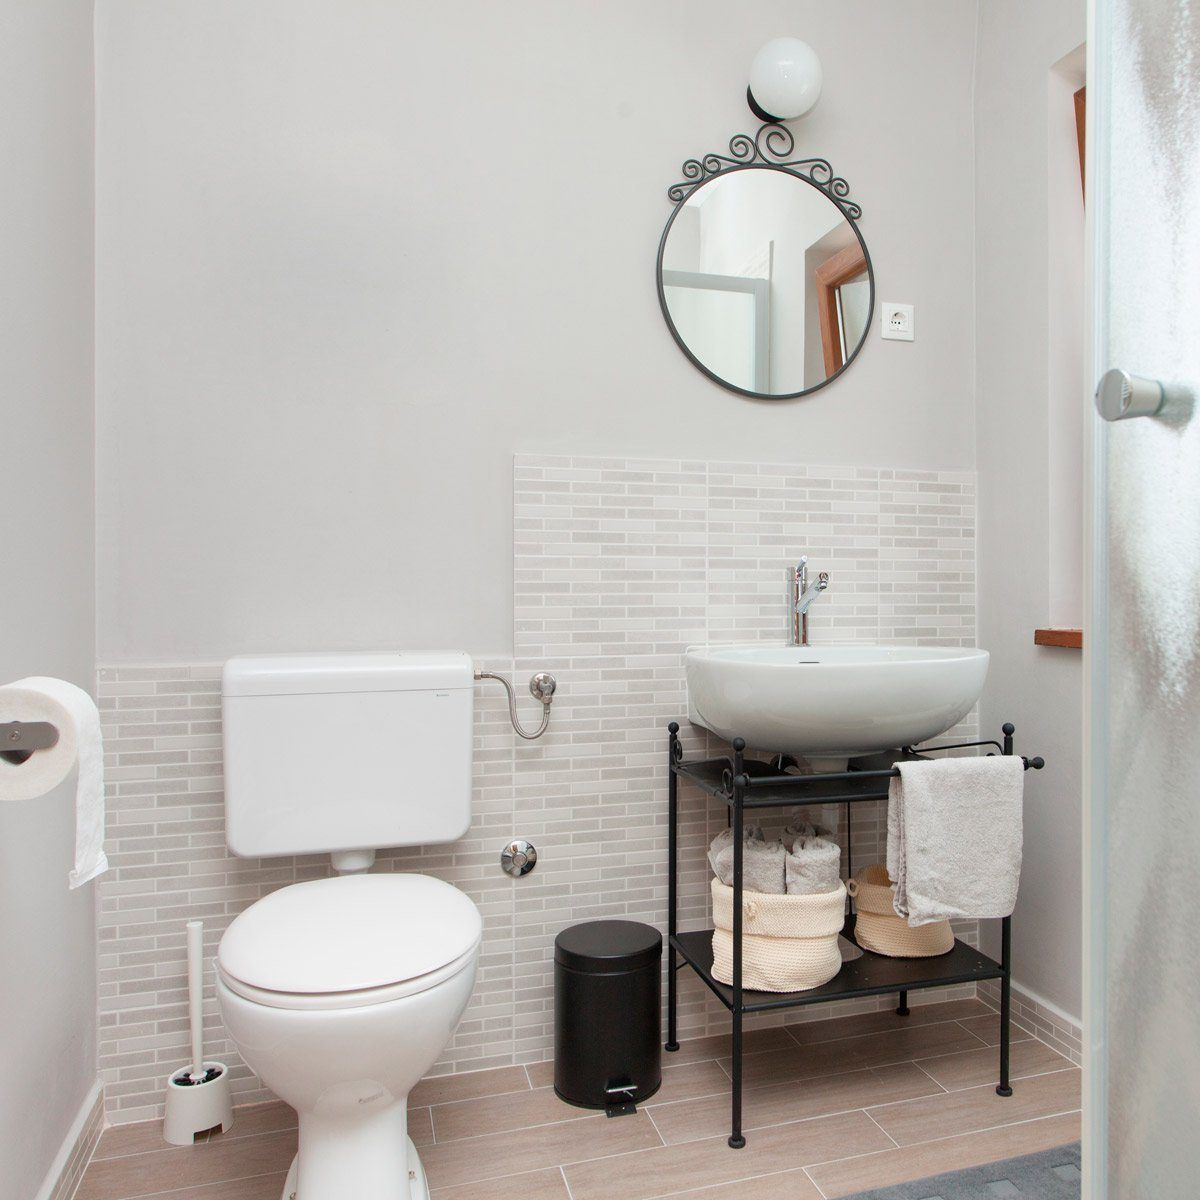 10 Small Bathroom Ideas That Make a Big Impact | Reader's ... on Ideas For Small Bathrooms  id=65228